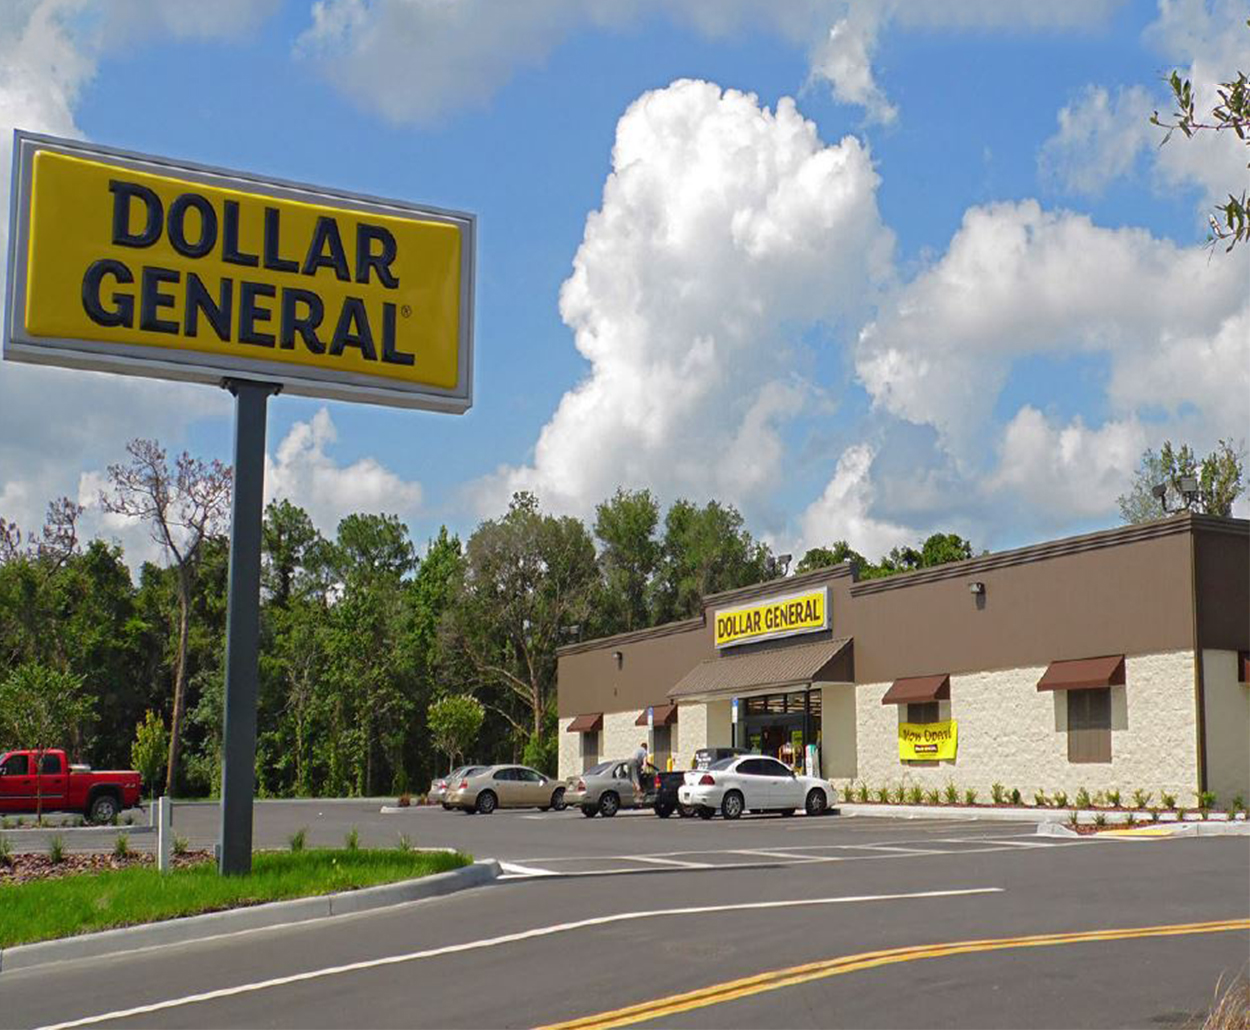 Dollar General | Buyers's testimonial